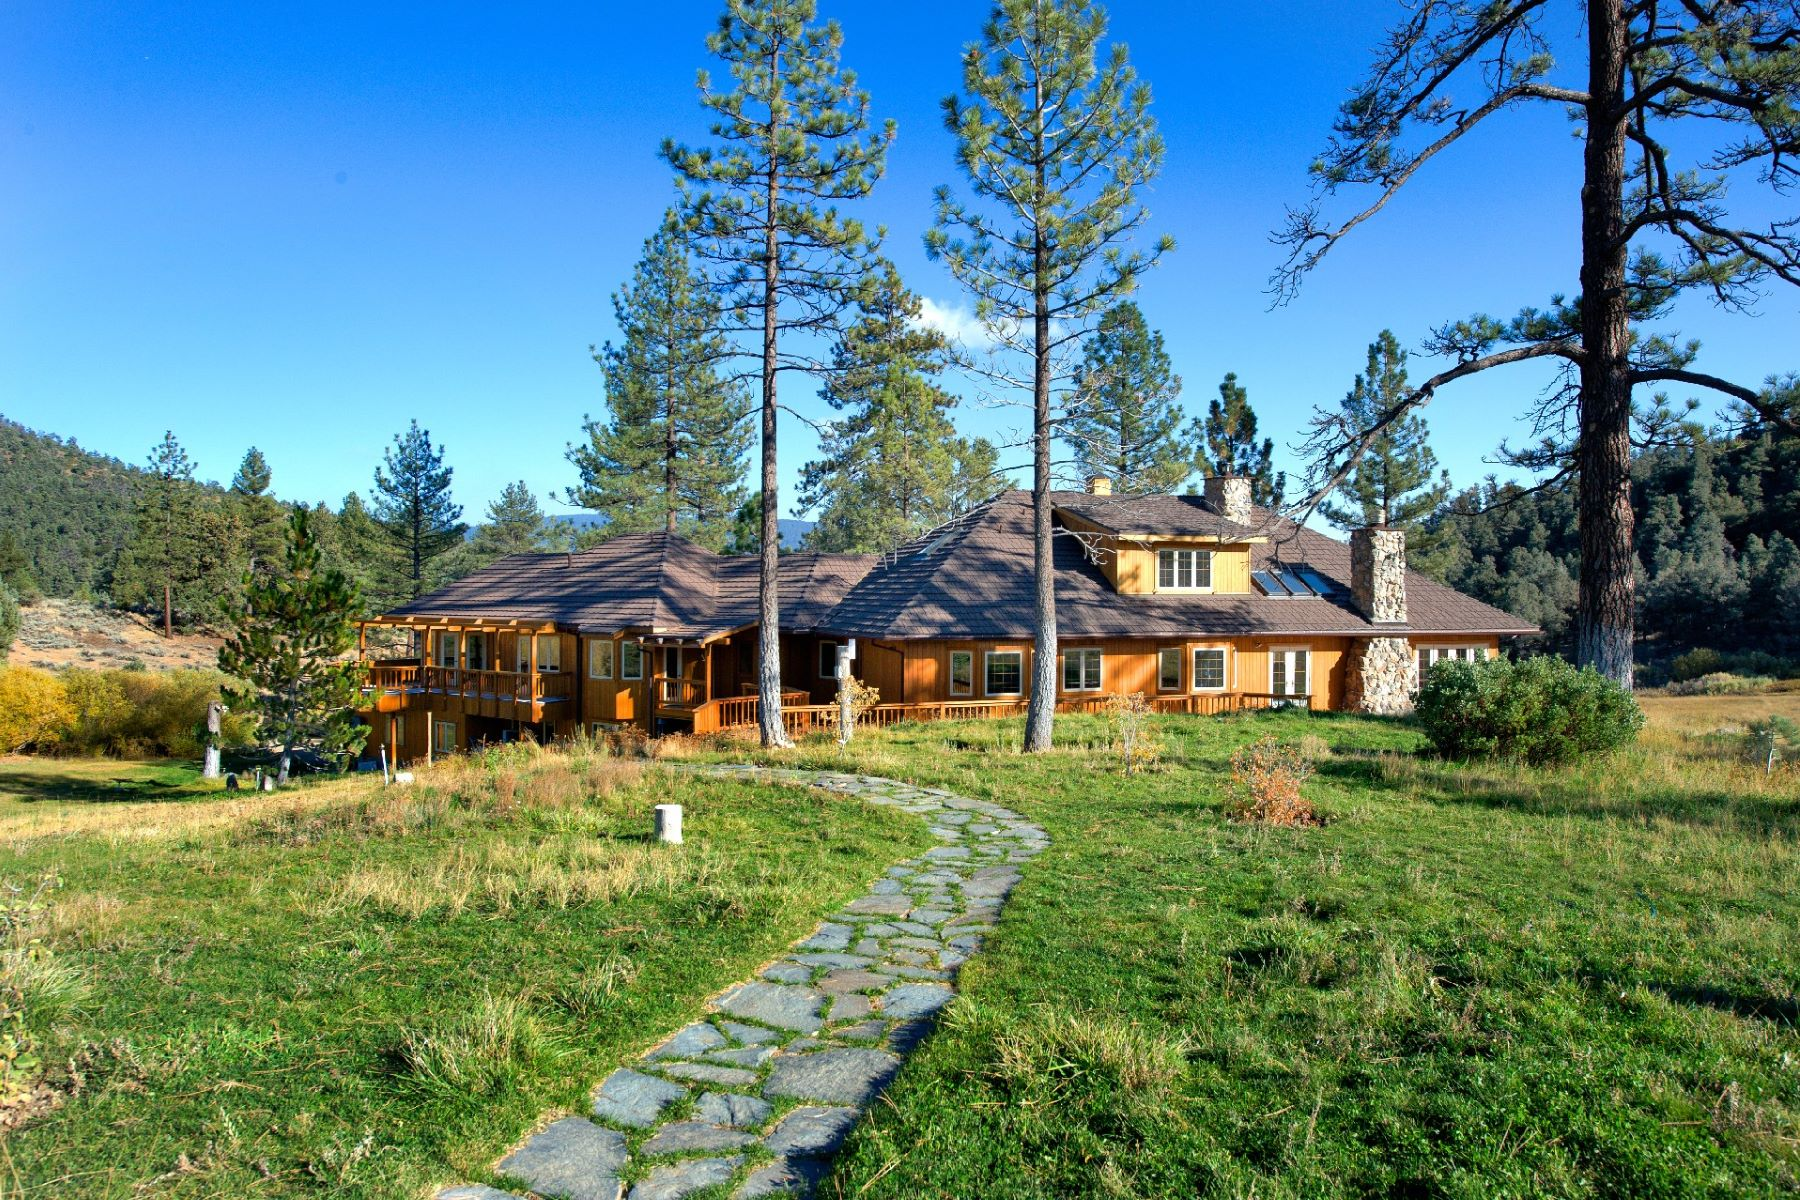 Ферма / ранчо / плантация для того Продажа на Spring Valley Ranch - Rare Mountain Valley Equestrian Property 33224 Seymour Canyon Road Lockwood, Калифорния, 93225 Соединенные Штаты